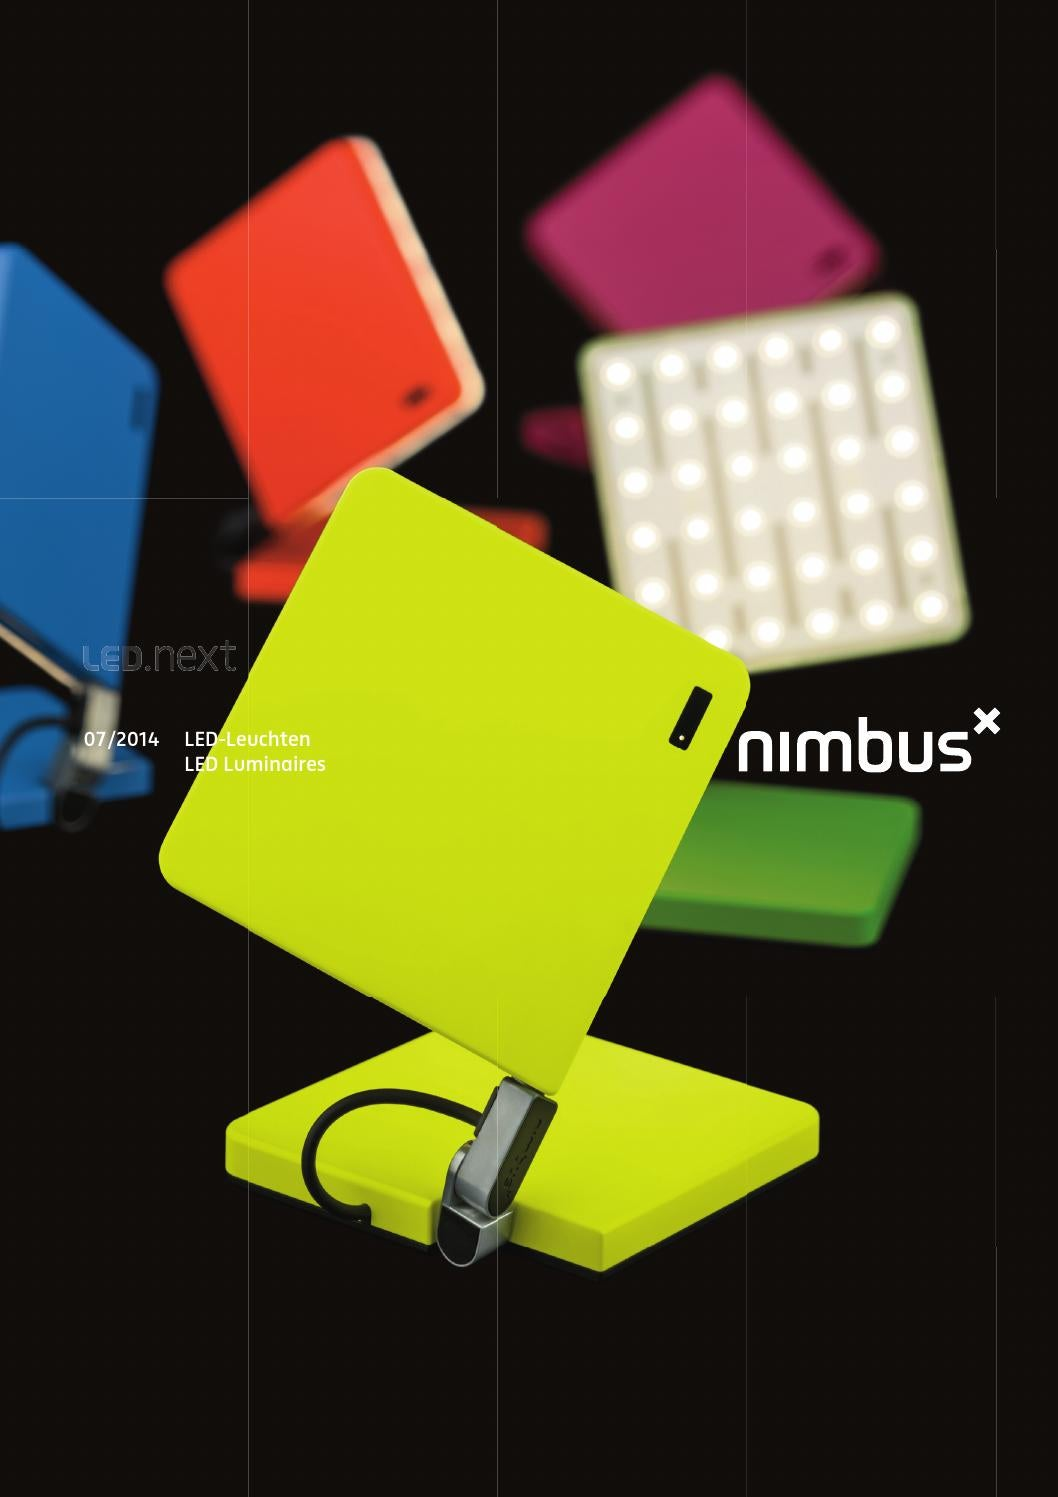 Led Langfeldleuchte Nimbus Led Next Hauptkatalog 2014 By Proluma Ag Issuu